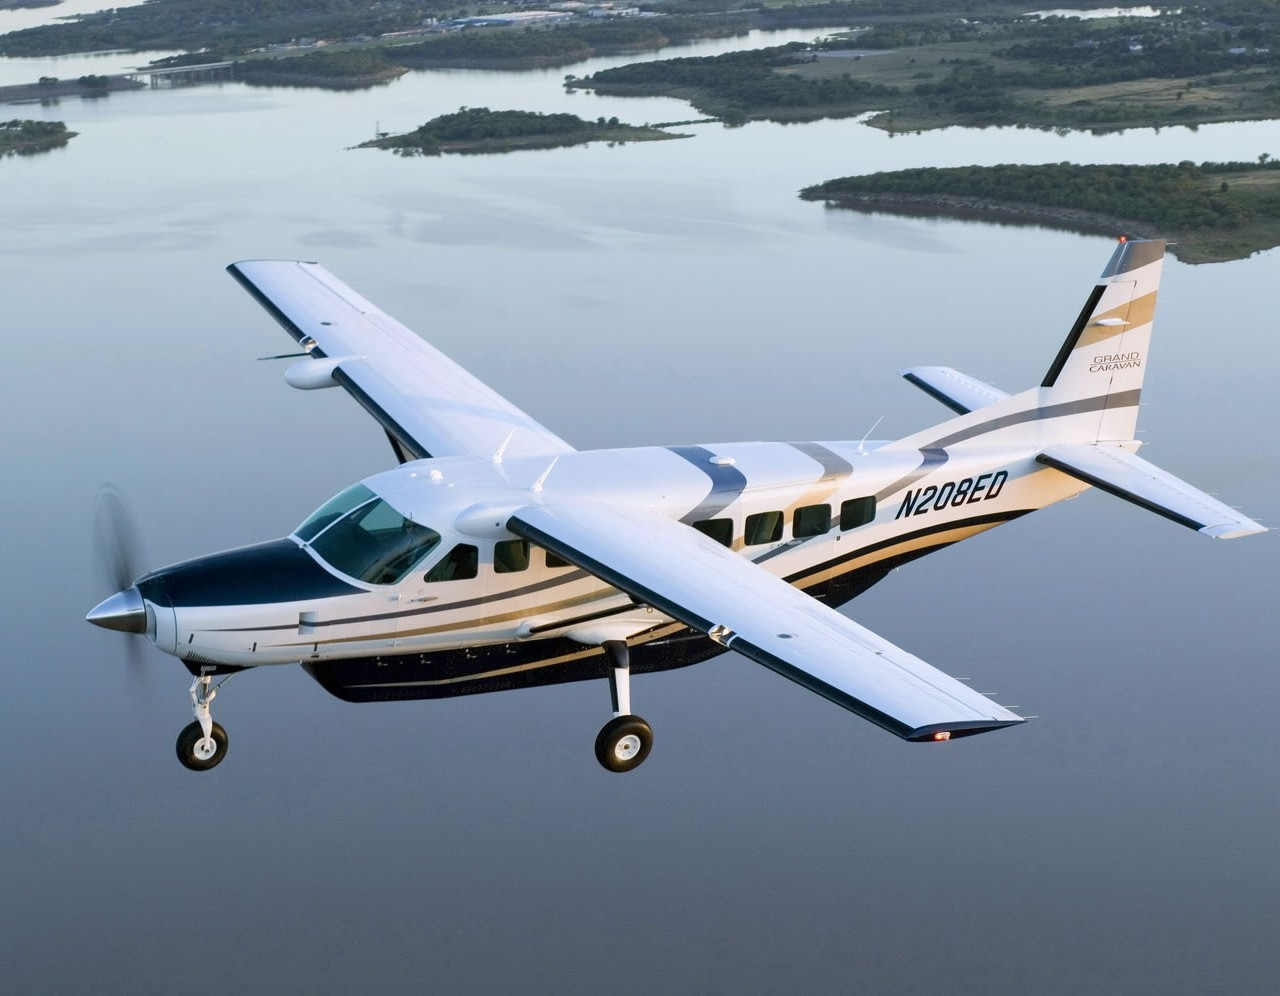 types of helicopters with Cessna 208 Grand Caravan on Cessna 208 Grand Caravan also Bell Helicopter Showcase Breadth Product Offerings Singapore Airshow besides File Chinook airlifting an F 15 likewise World In Conflict Pc Download in addition Luxurious Helicopters.